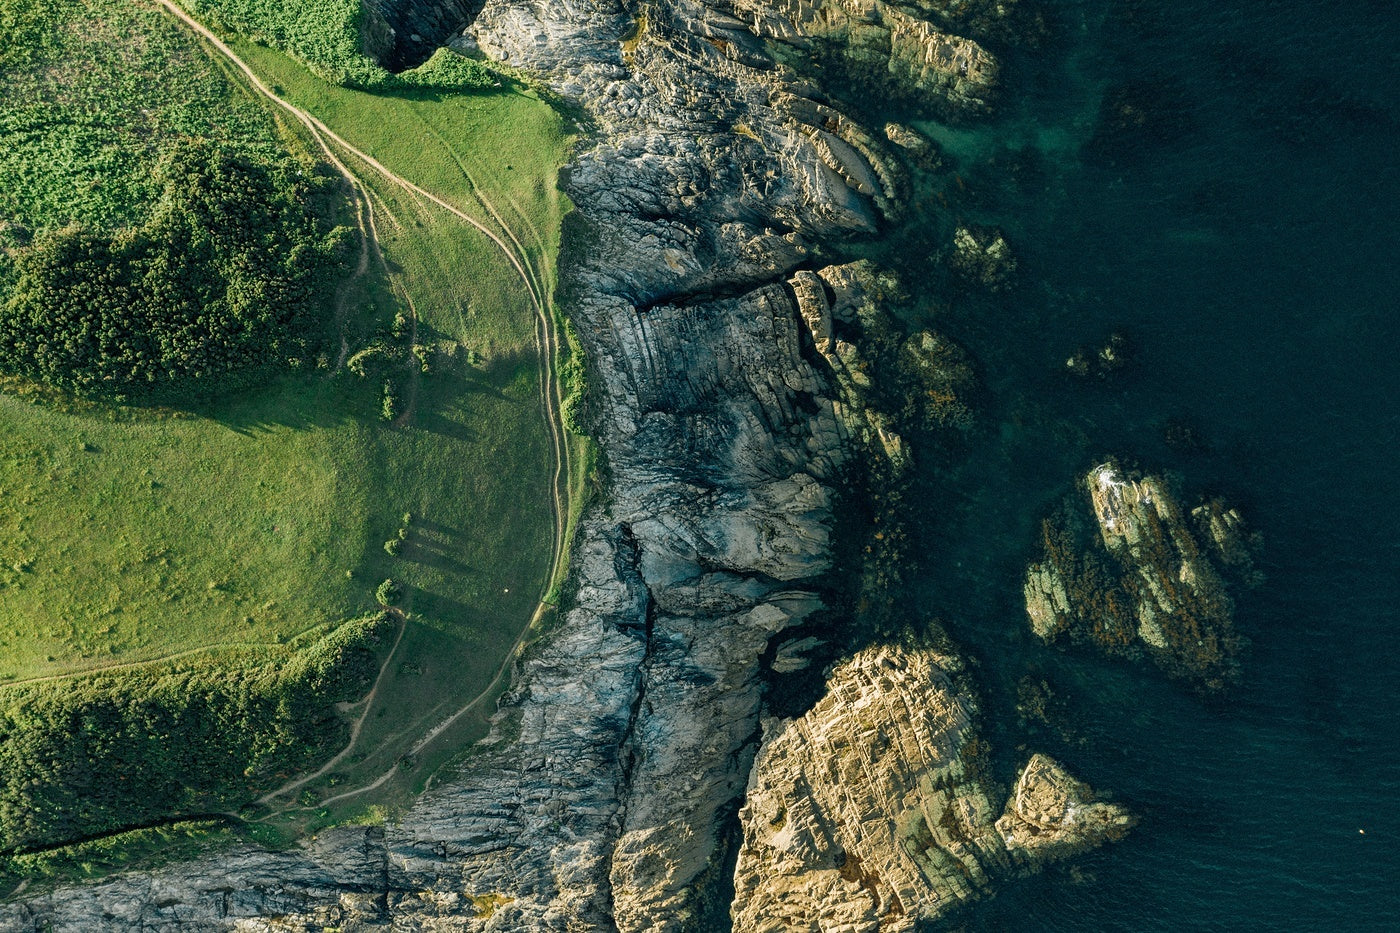 A drone shot of a section of the South West Coast Path on the South coast of Cornwall